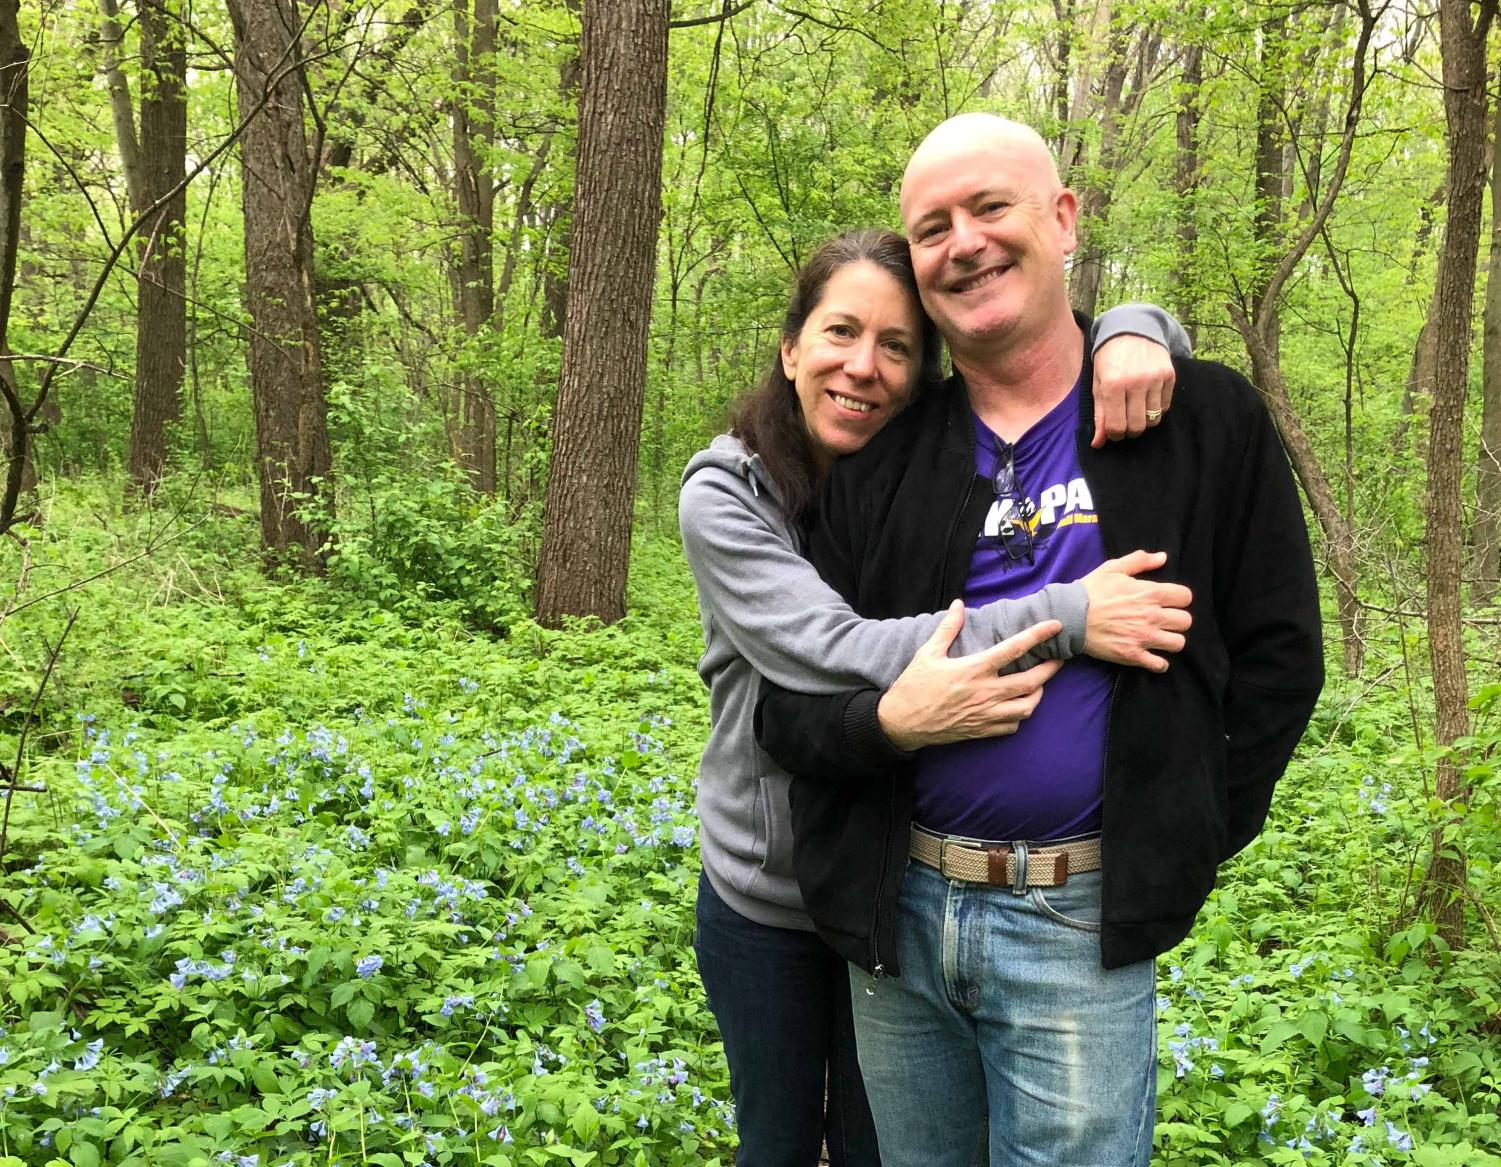 Husband-and-wife duo Jim O'Loughlin and Julie Husband have both been teaching at UNI since 2000. In honor of Valentine's Day, the couple shared their story with staff writer Sofia Legaspi.